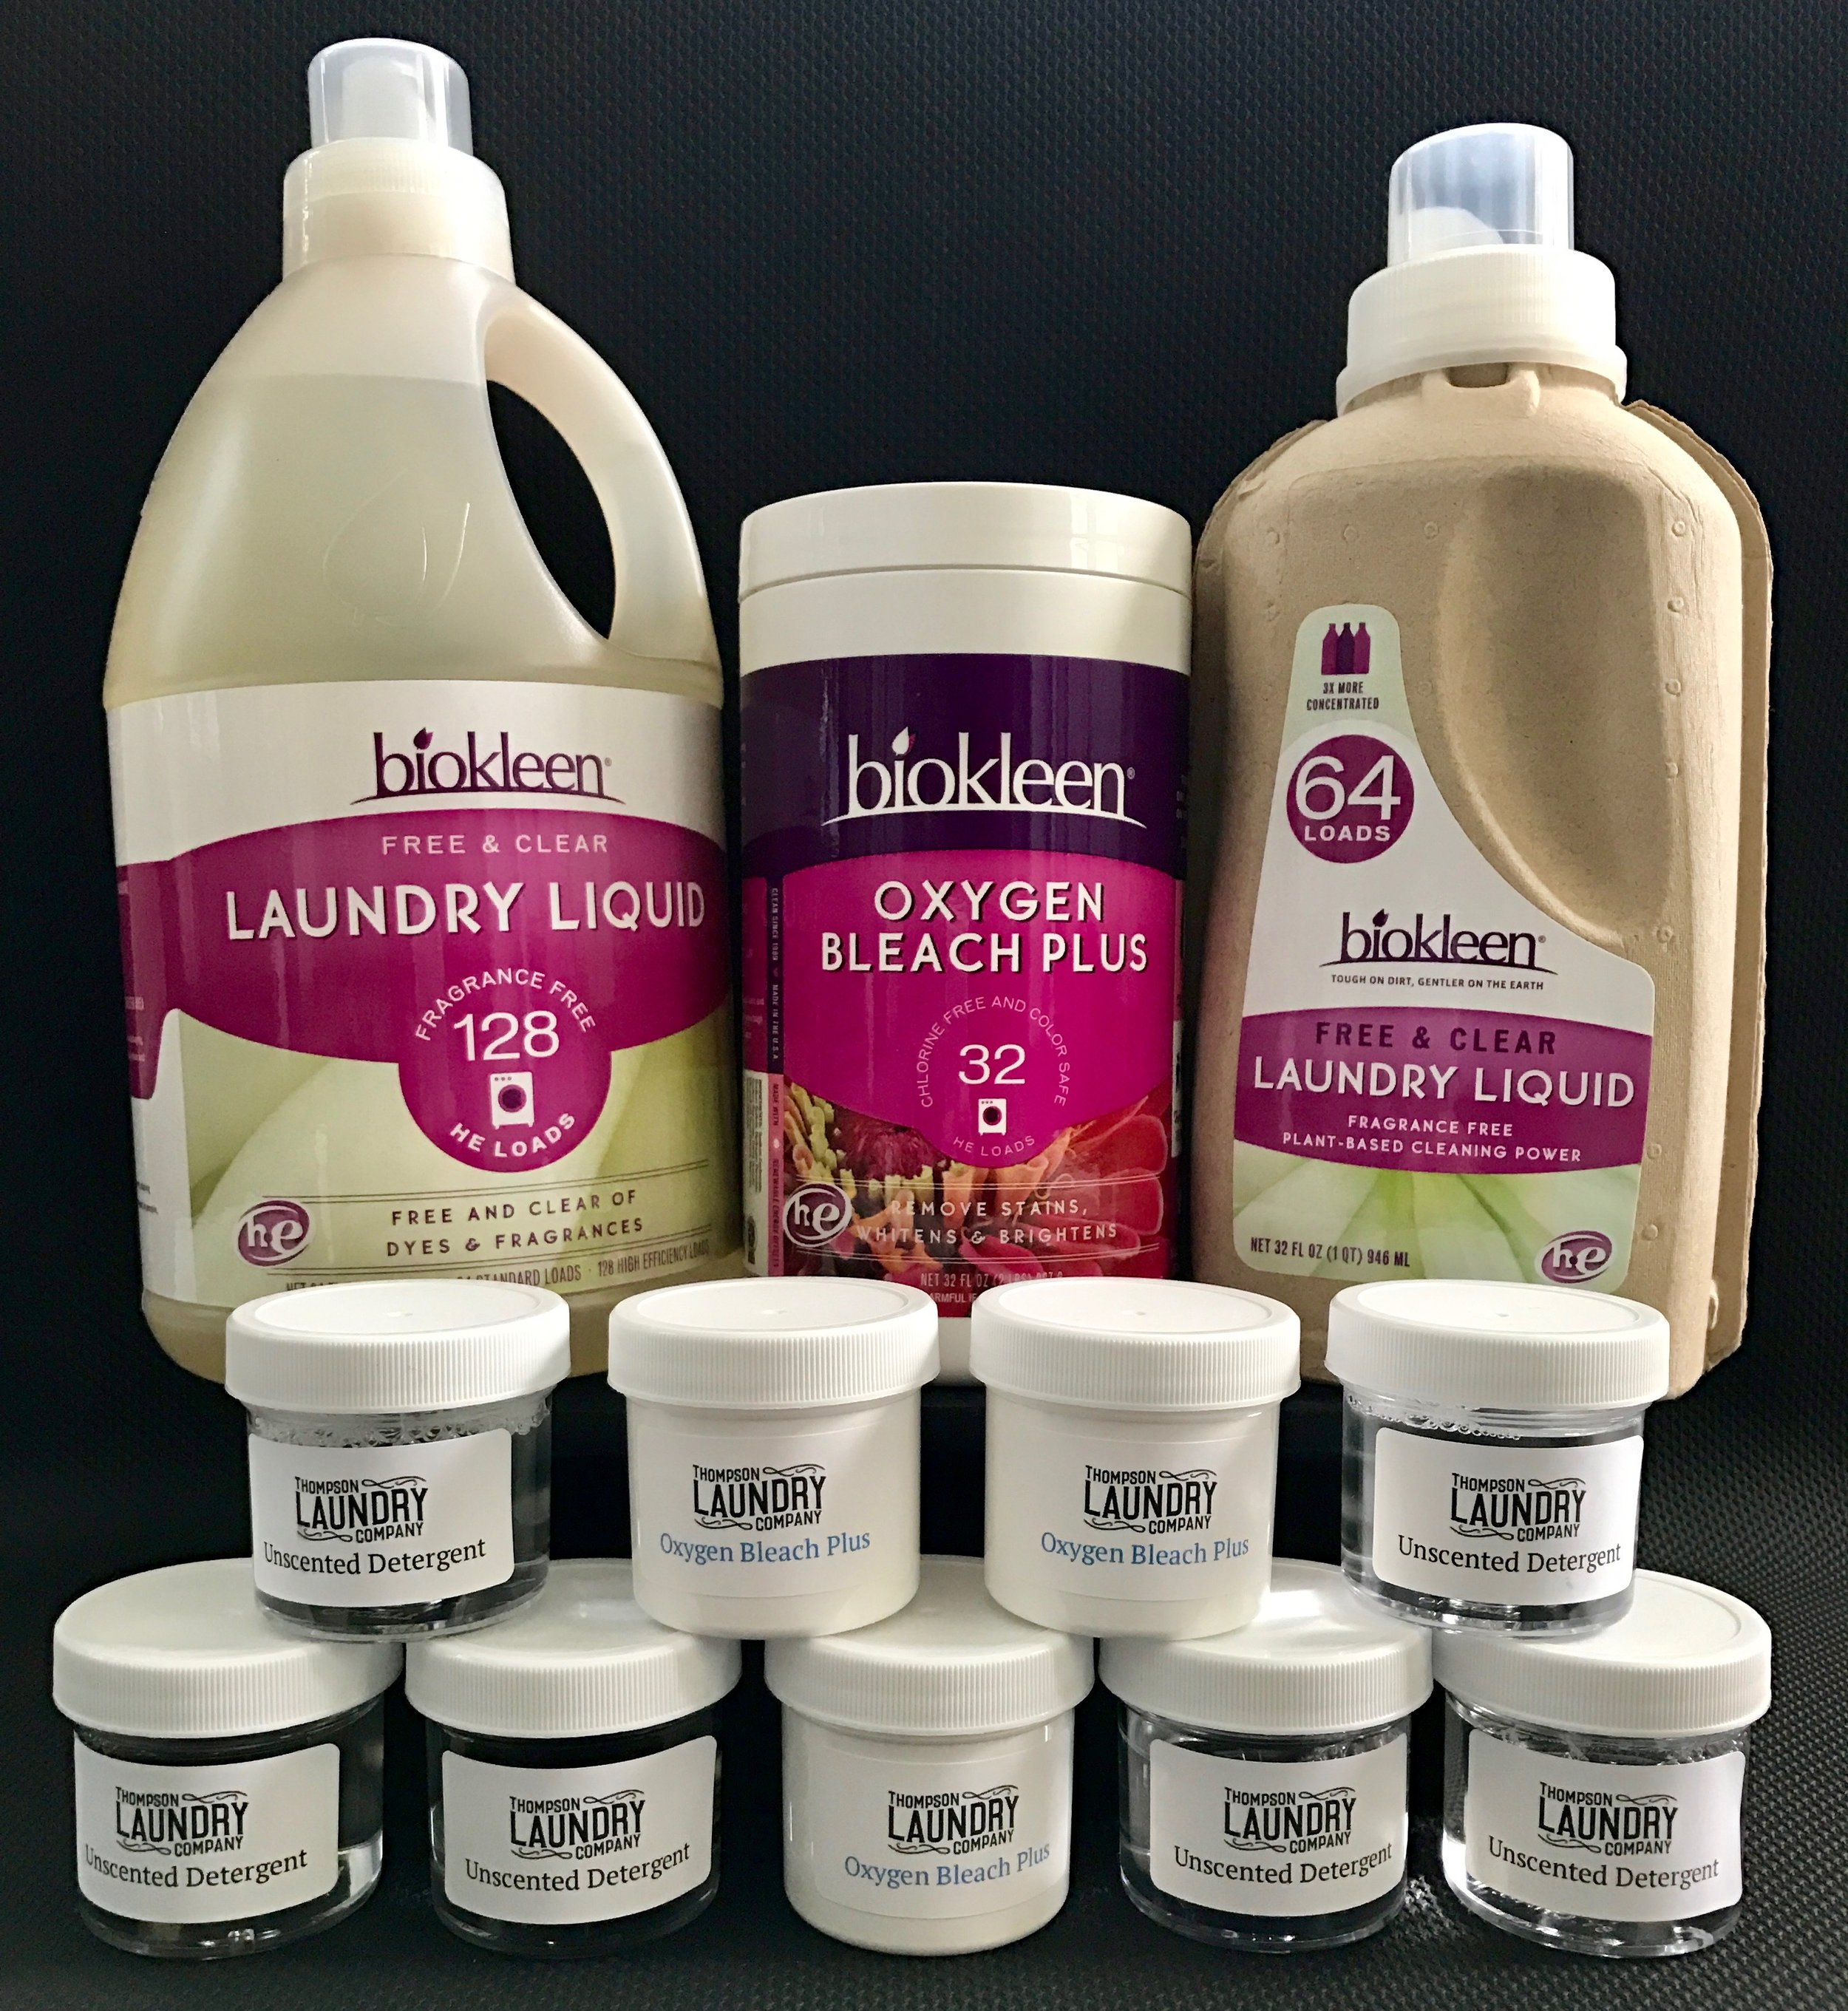 BIOKLEEN LAUNDRY PRODUCTS FOR SALE AT THE FRONT COUNTER